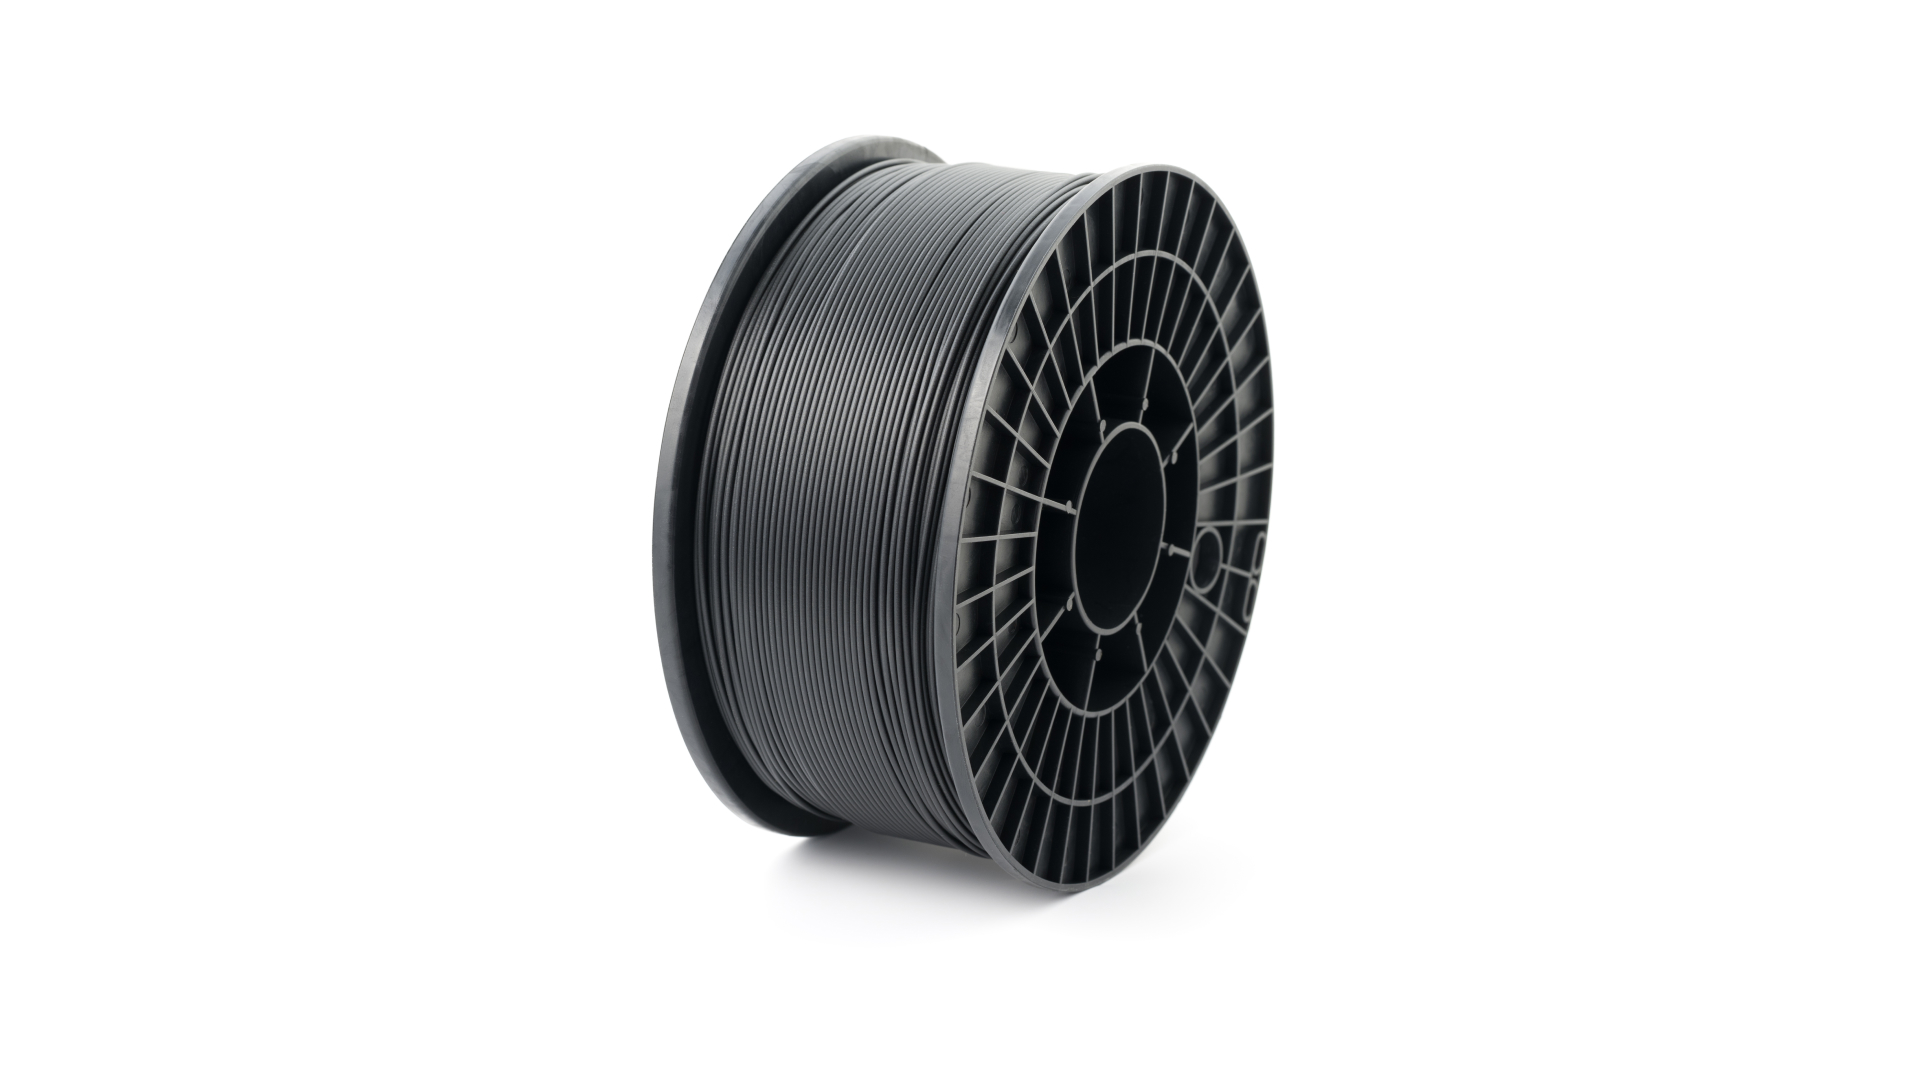 High-performance carbon composite material is a perfect additive manufacturing solution